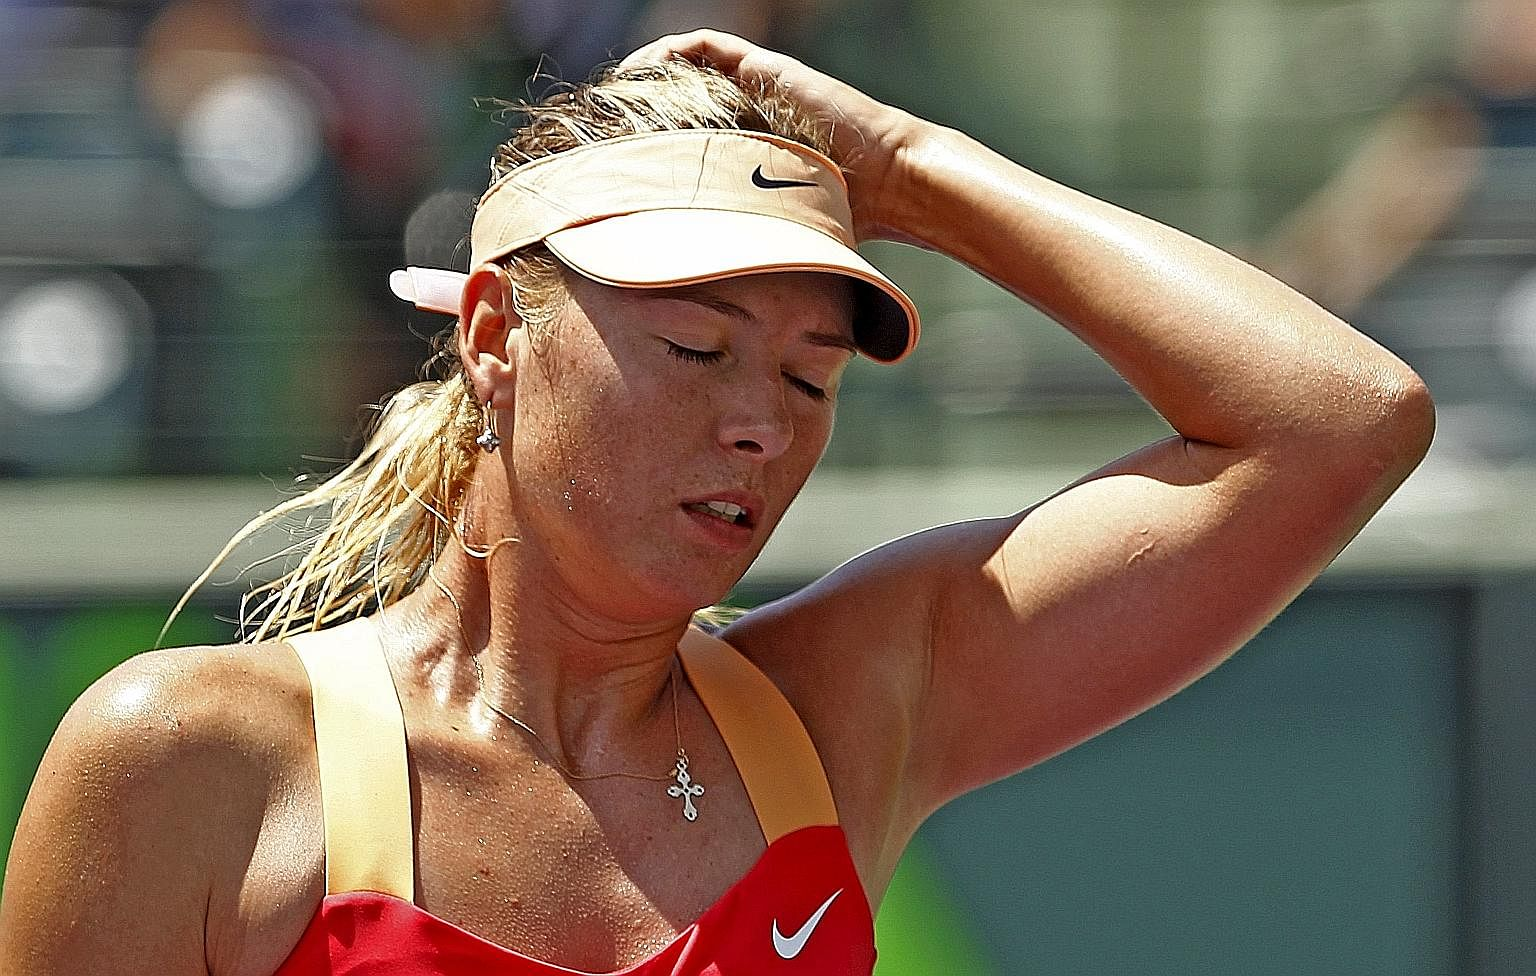 Maria Sharapova's startling admission in Los Angeles drives home the pressing need for adequate resources to keep sport clean.